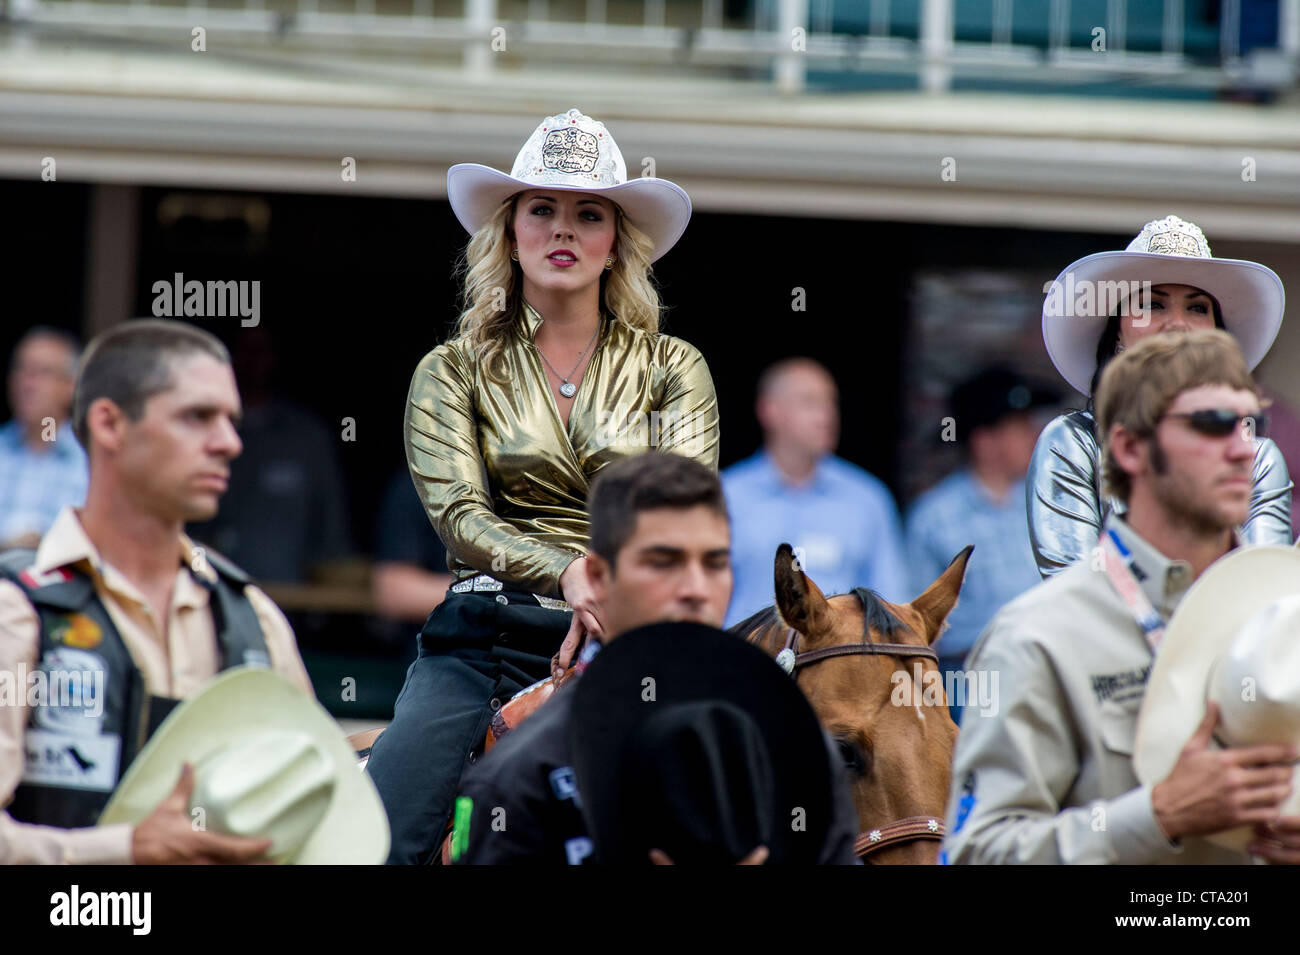 Rodeo Queen at the Calgary Stampede Rodeo opening ceremonies Stock Photo